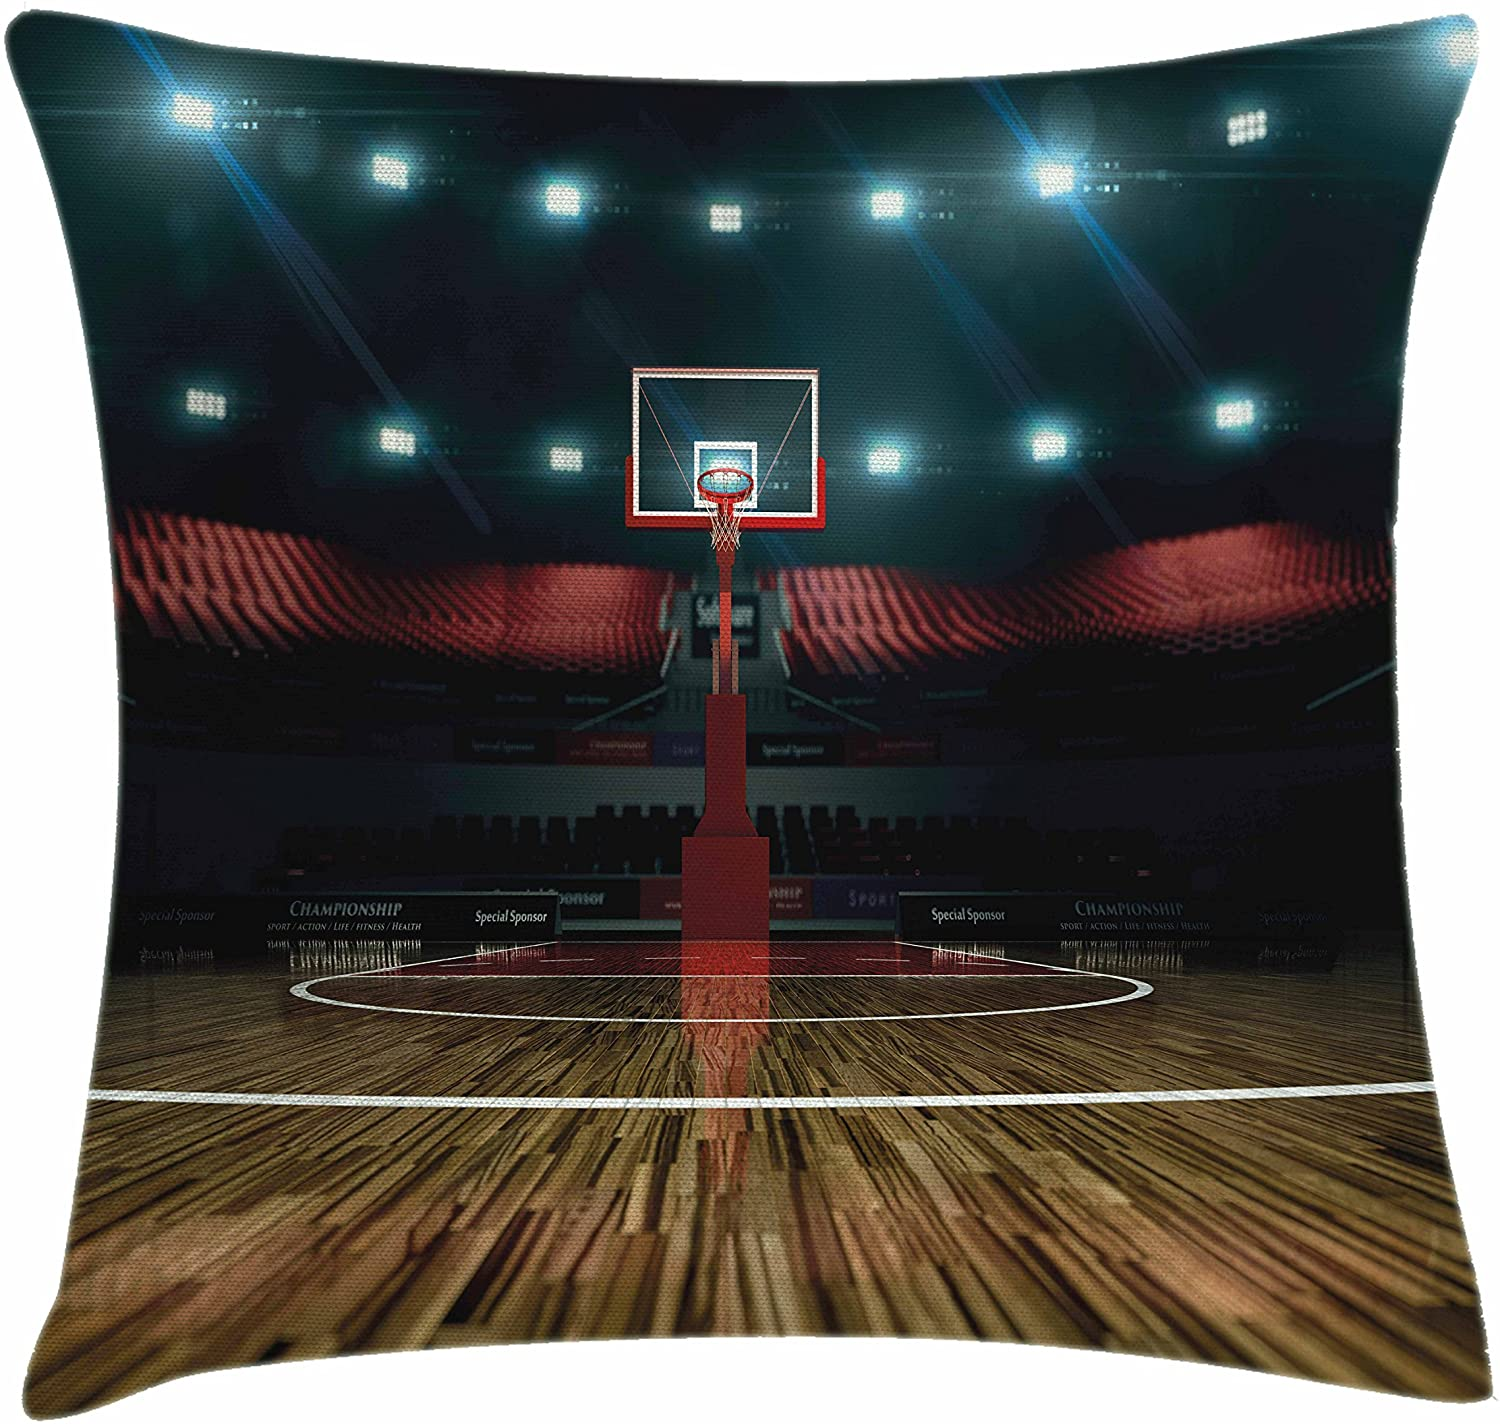 Ambesonne Teen Room Throw Pillow Cushion Cover, Professional Basketball Arena Stadium Before The Game Championship Sports Image, Decorative Square Accent Pillow Case, 24 X 24, Dark Brown